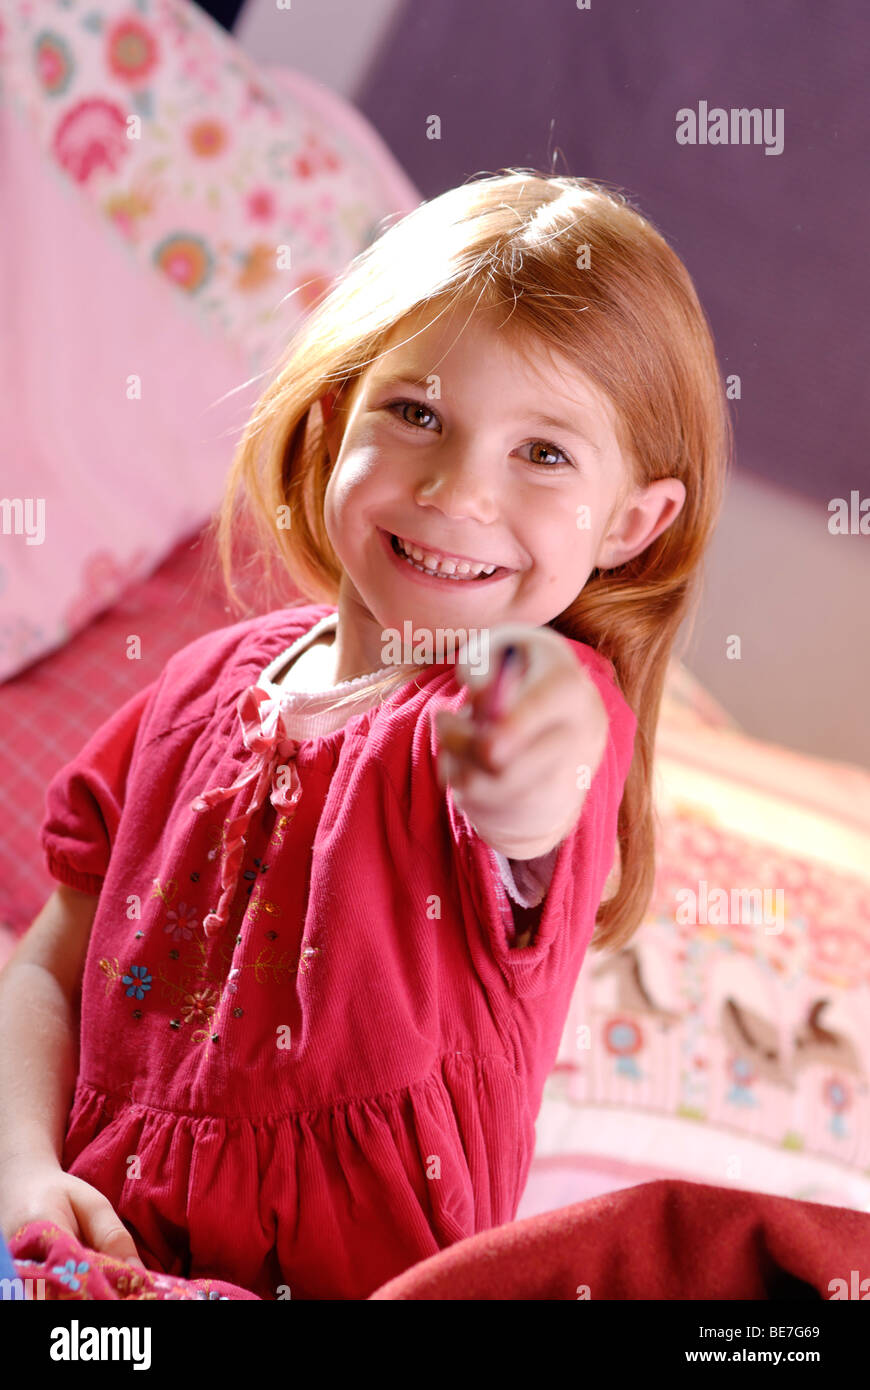 Little girl holding a pen in her hand - Stock Image